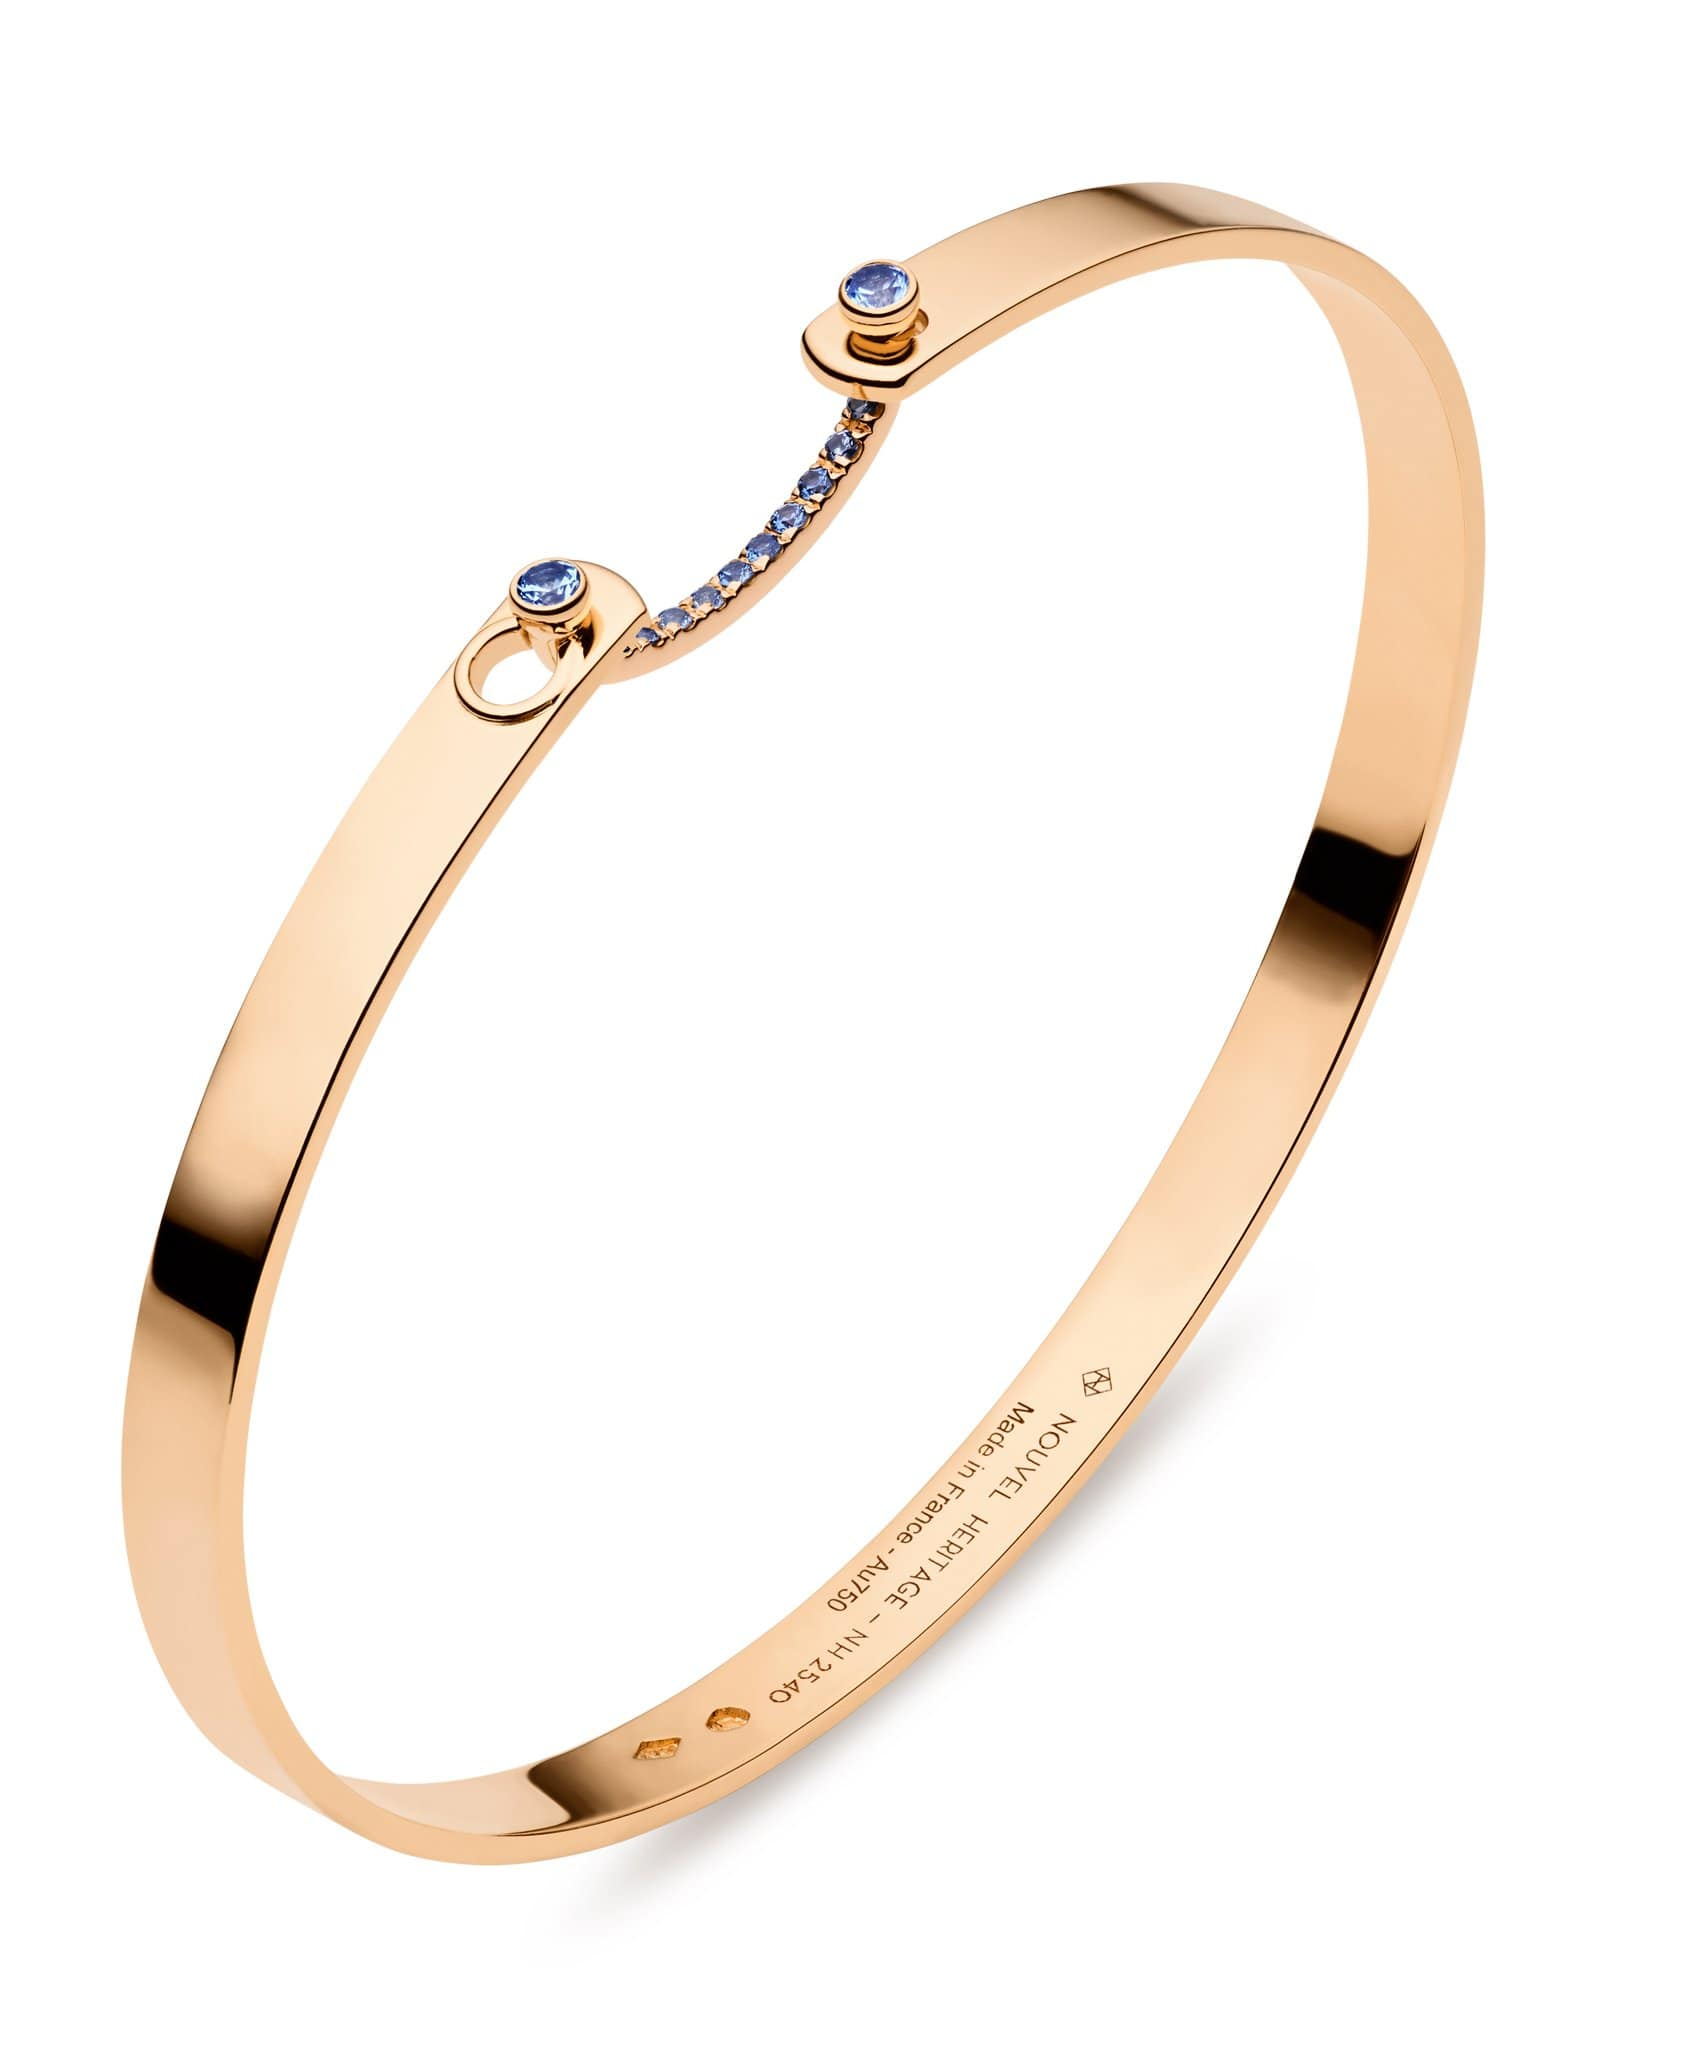 Baby Blue Mood Bangle: Discover Luxury Fine Jewelry | Nouvel Heritage